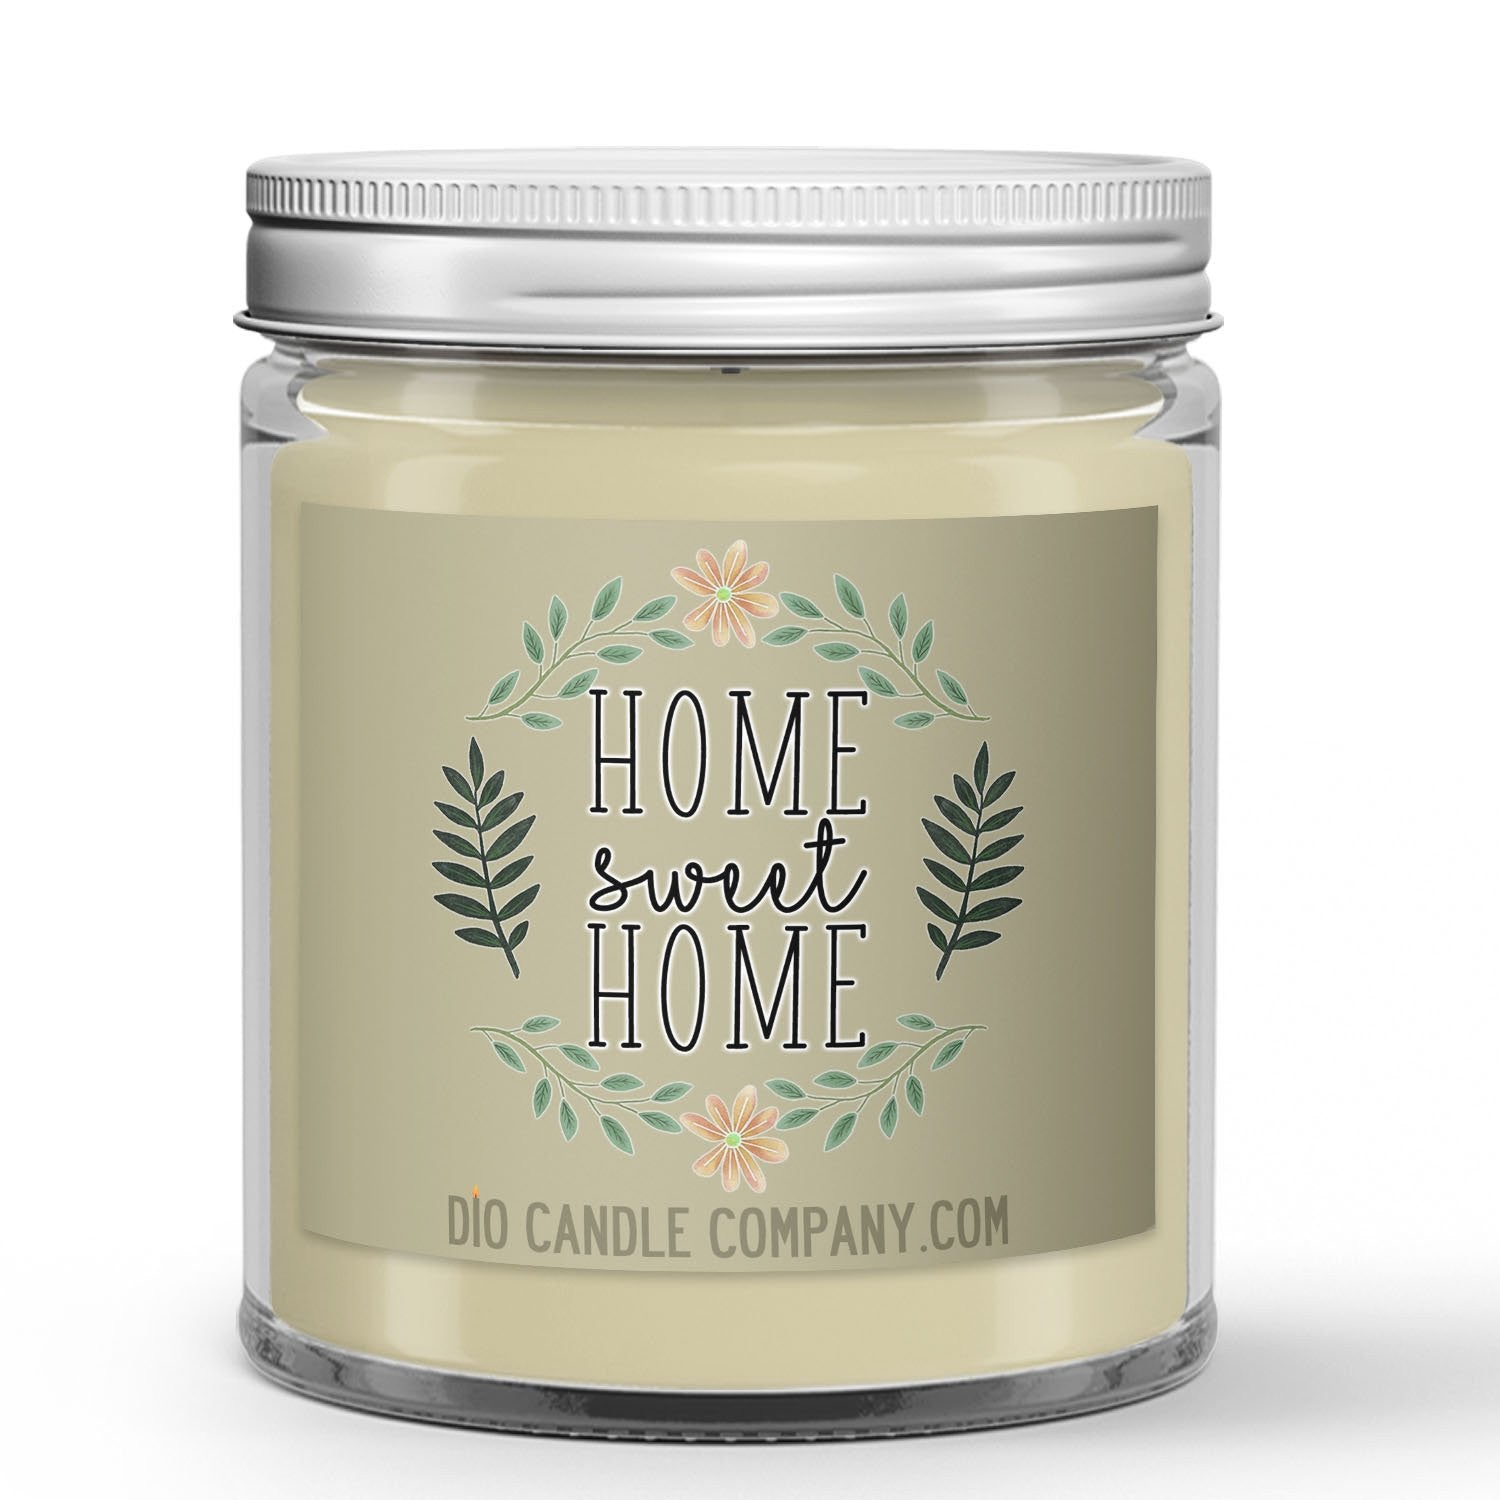 Home Sweet Home Candle - Blueberry Pie - Cotton - 8oz Super Adorable Size Candle® - Dio Candle Company